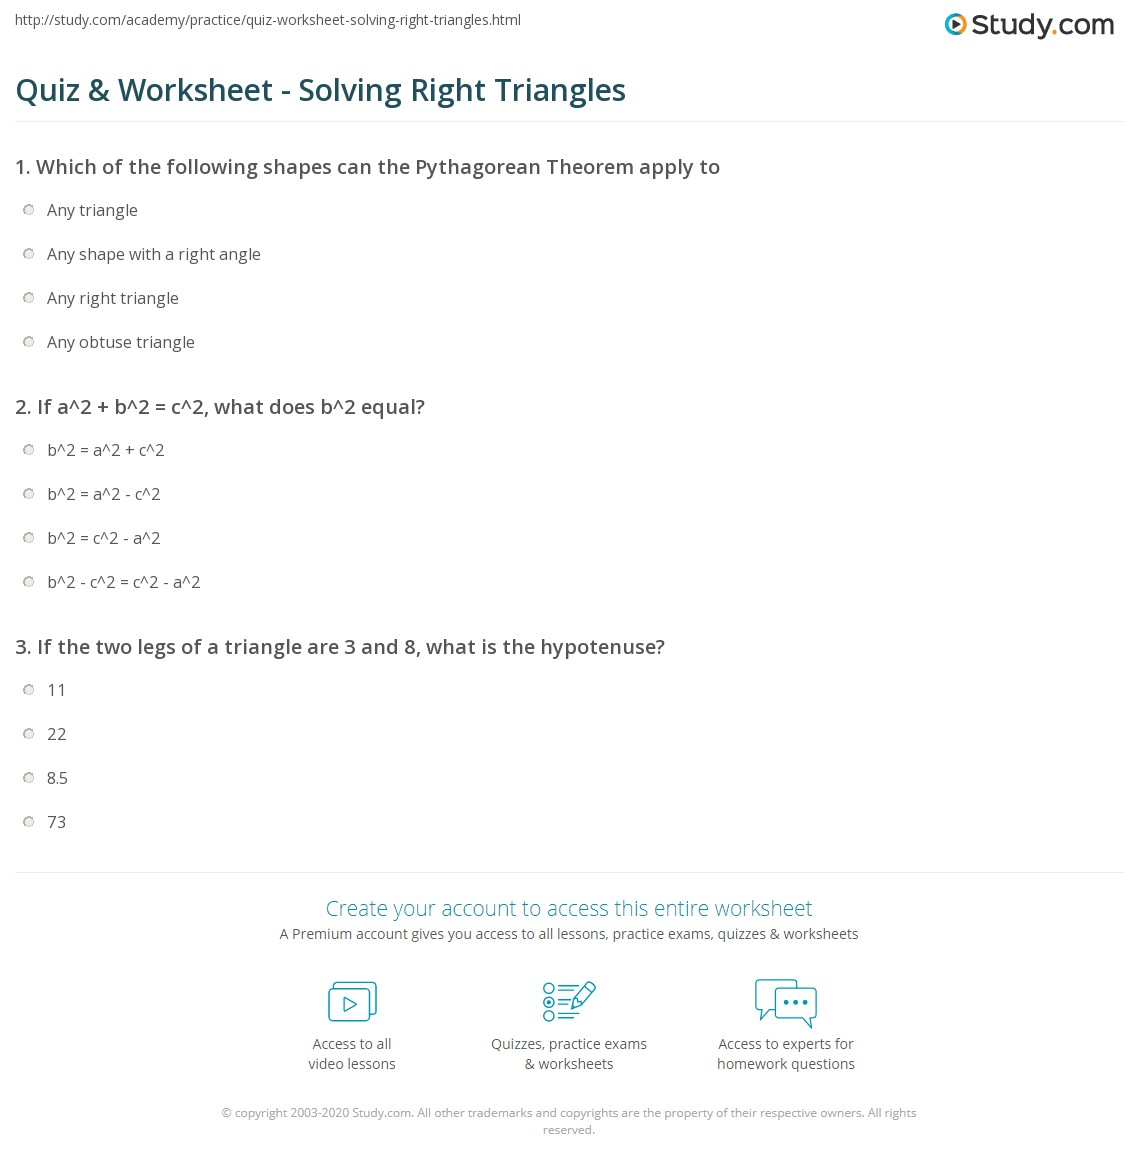 Quiz & Worksheet - Solving Right Triangles | Study.com